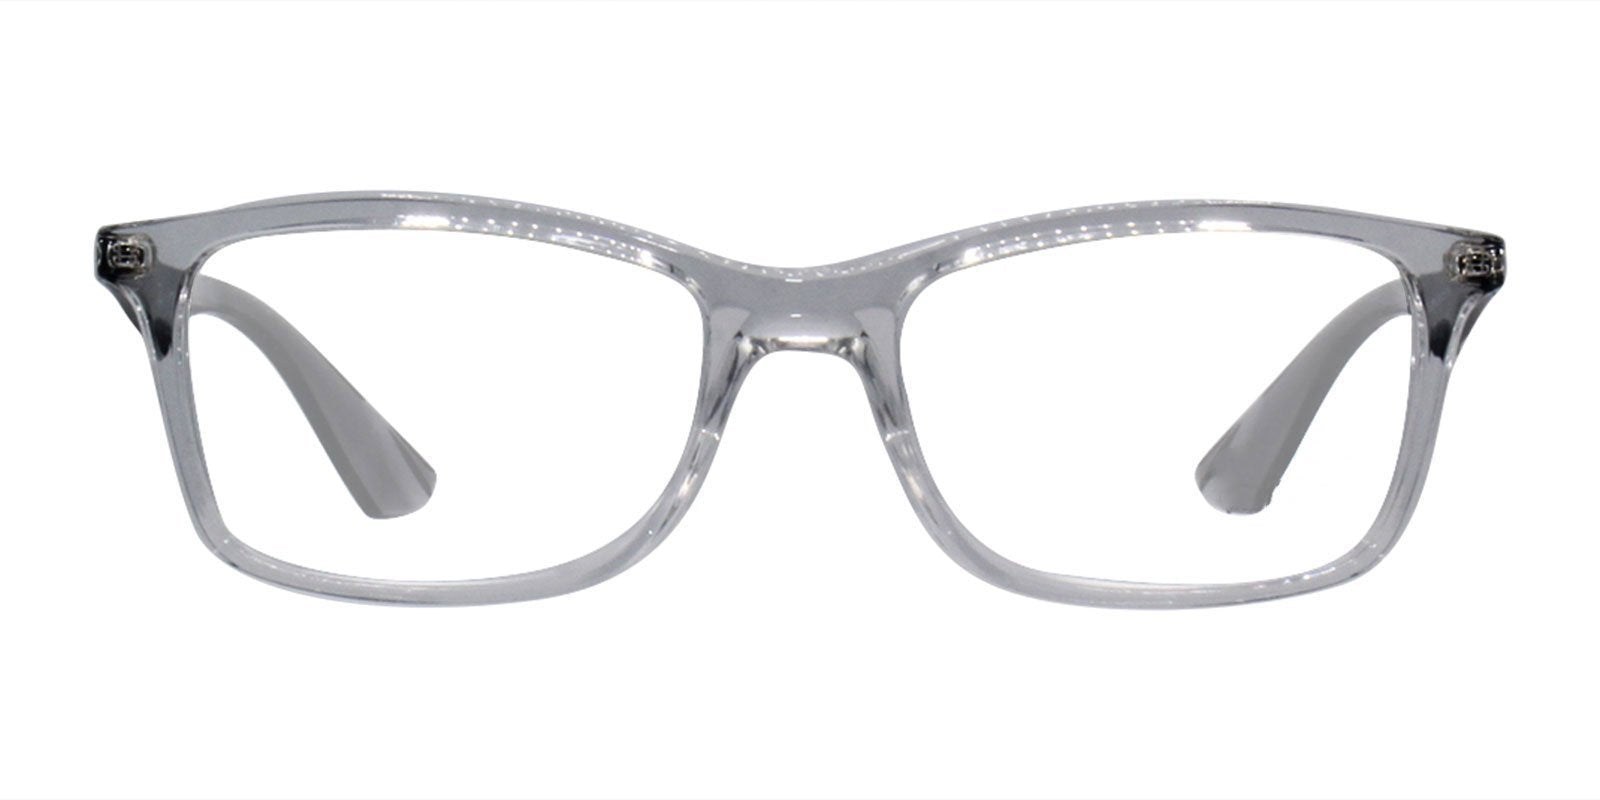 Ray Ban Rx - RX7047 Clear Rectangular Unisex Eyeglasses - 54mm-Eyeglasses-Designer Eyes